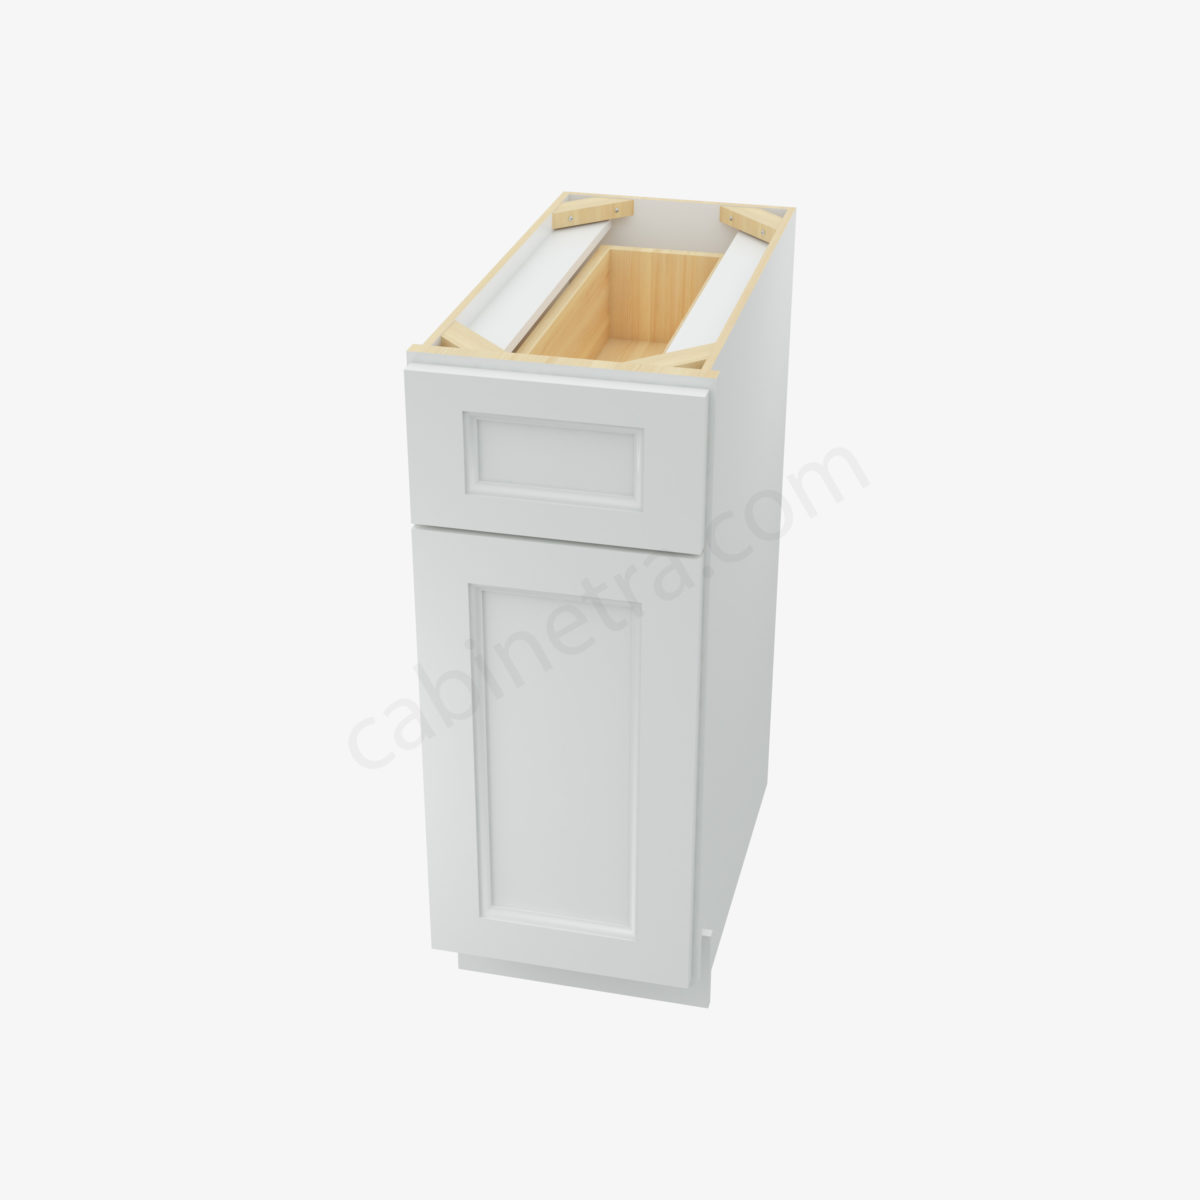 TW B12 3 Forevermark Uptown White Cabinetra scaled